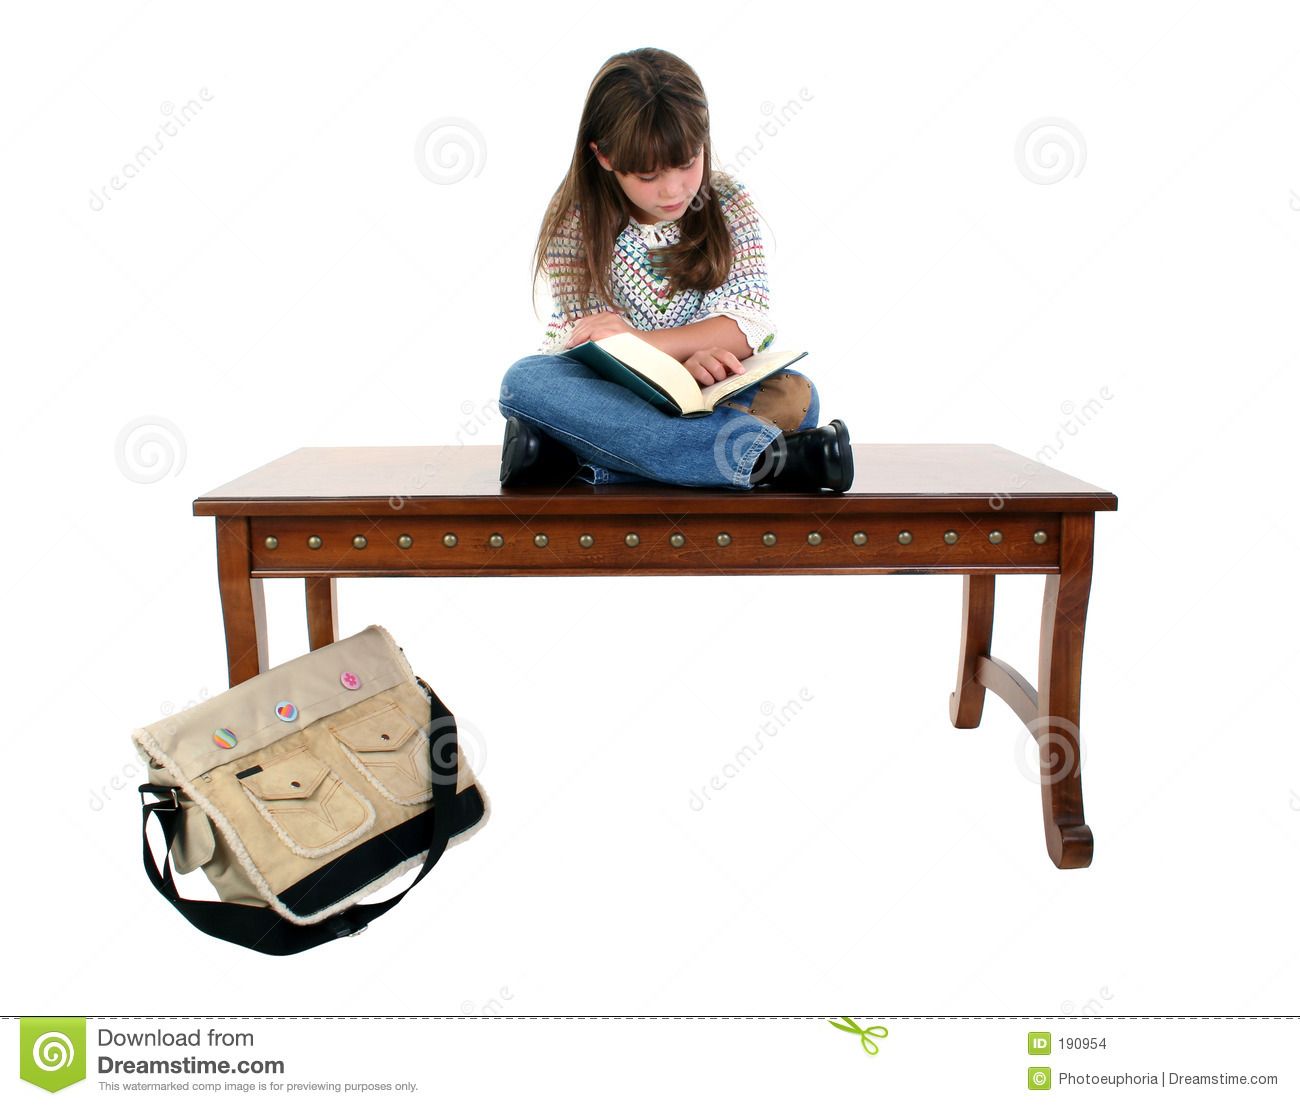 Etonnant Child Sitting On Table Reading Book